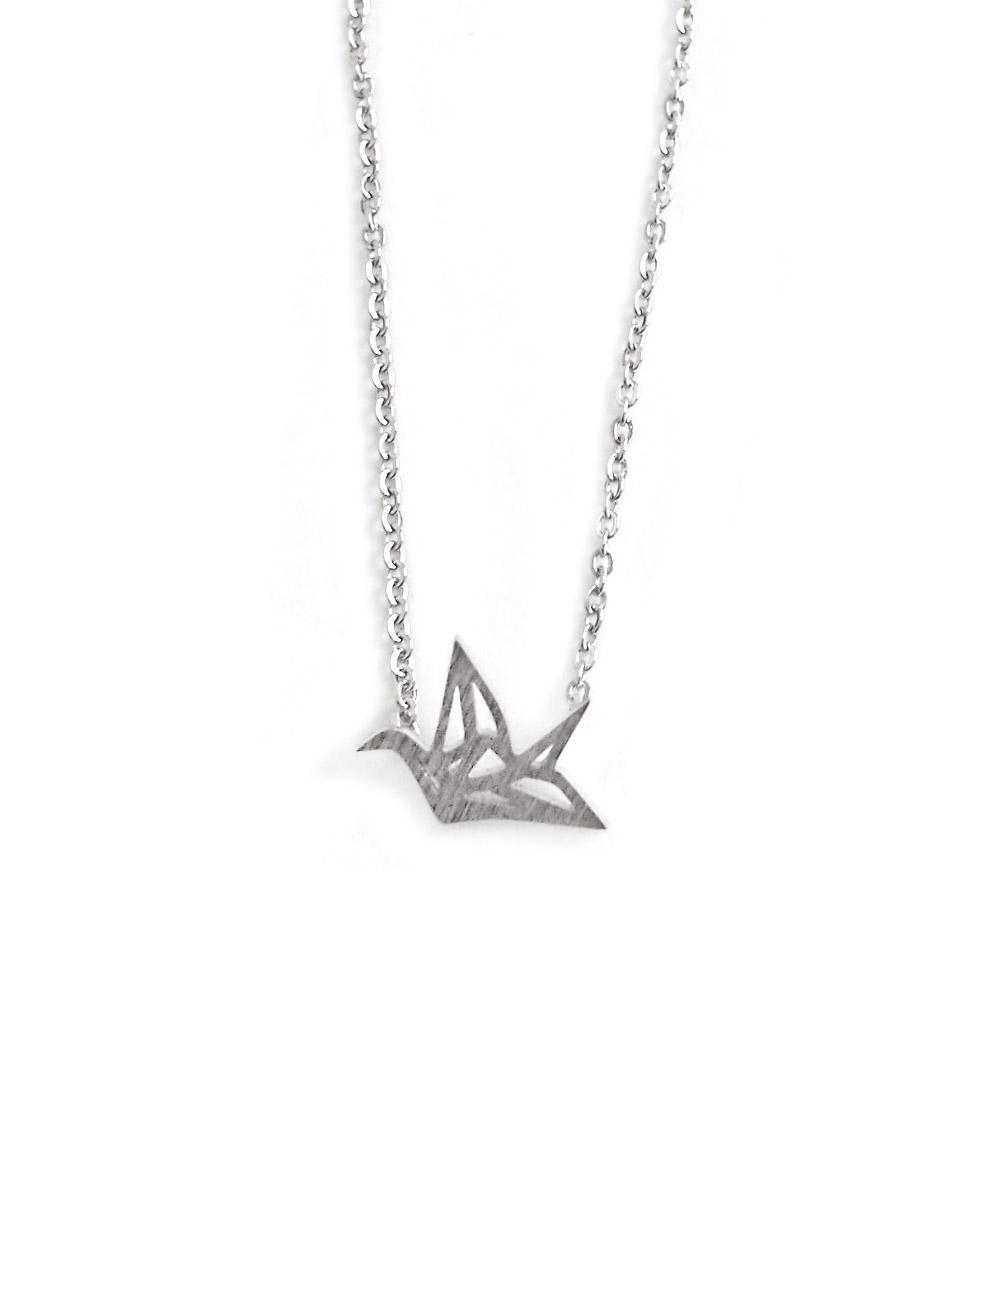 (Back in Stock) (Stainless Steel) Mini Origami Crane Necklace in Silver | Arva.co - photo#12